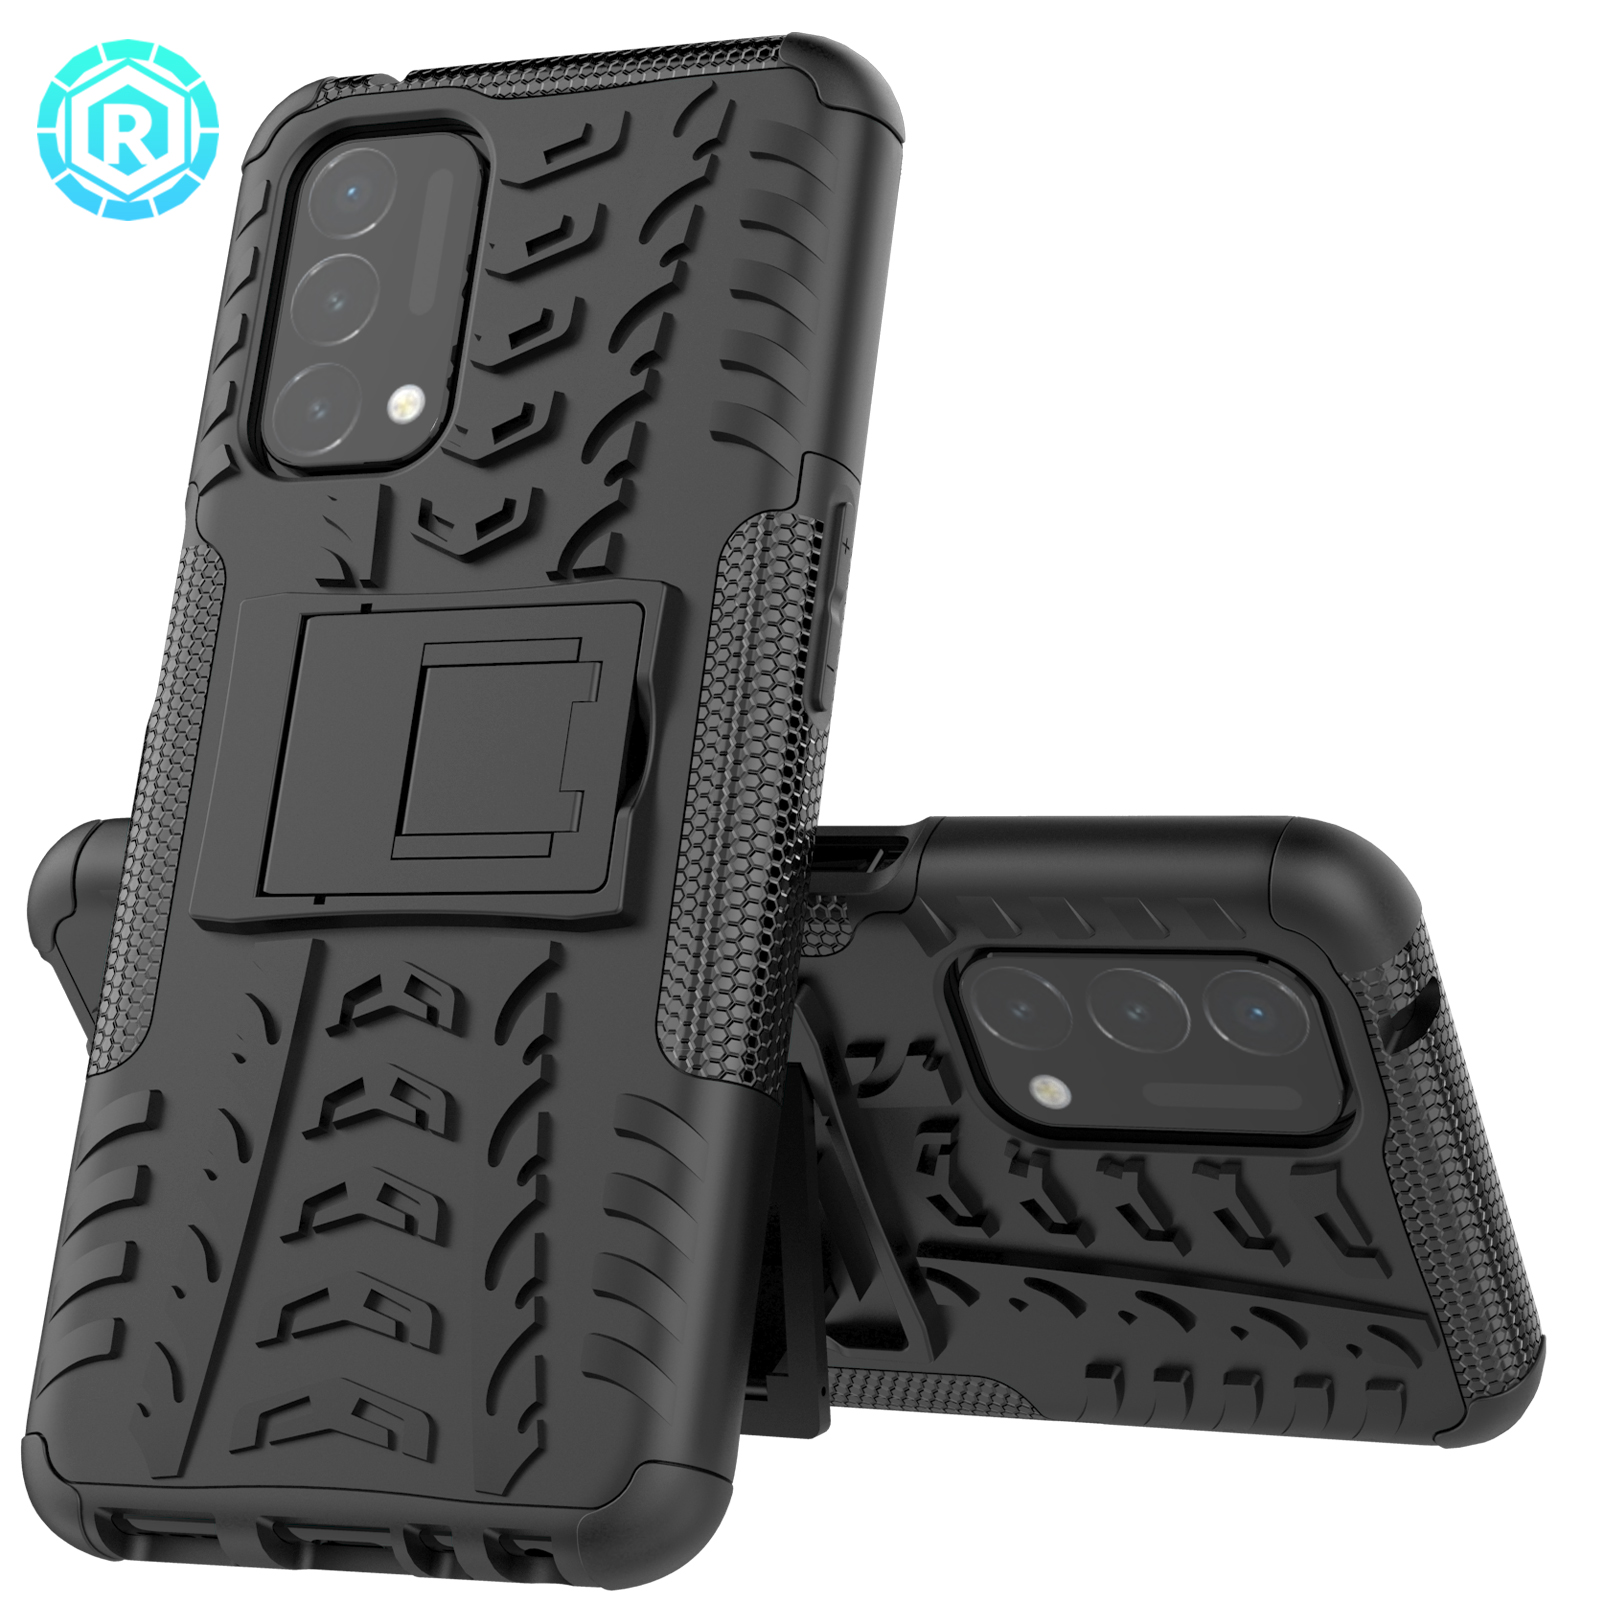 Dazzle Phone Case for OnePlus Nord N200 5G